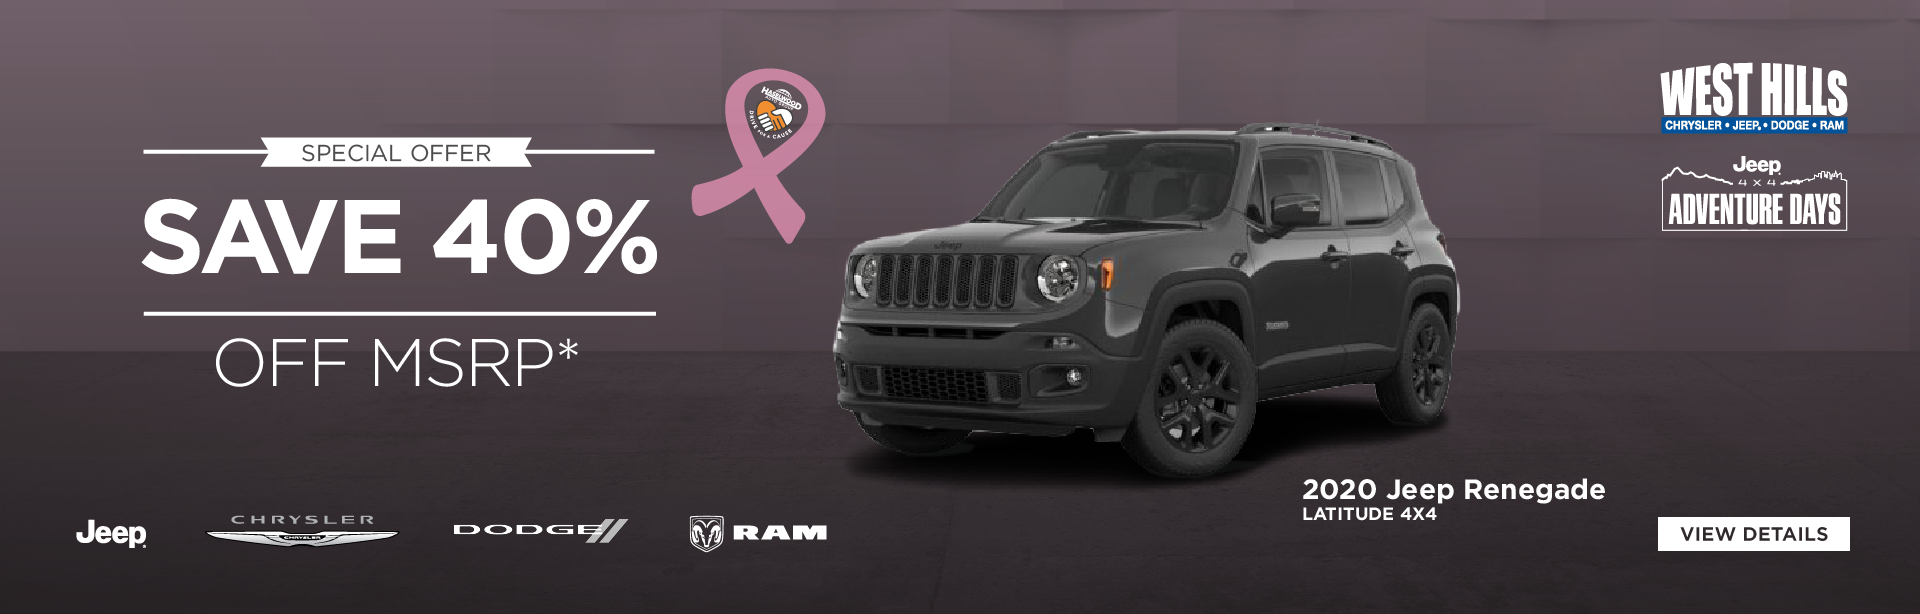 2019 Jeep Renegade Latitude 4x4 (featured vehicle)  SAVE 40% OFF MSRP*    * Offer valid on 2019 Jeep Renegade Latitude. VIN: ZACNJBBB1KPK24630. MSRP: $28,805. WHCJDR Discount: $4,750. Rebate: $6,750. Sale Price: $17,305. Based on approval of program ID 70CK1, WECKE, 44CKB3, 43CKP1 43CKP3, 43CKP4, WECKA, 43CL1B1. Subject to credit approval. Down payment and monthly payment may vary. Excludes taxes, tags, registration and title, insurance and dealer charges. A negotiable dealer documentary service fee of up to $150 may be added to the sale price or capitalized cost. Exp. 10/31/2019.